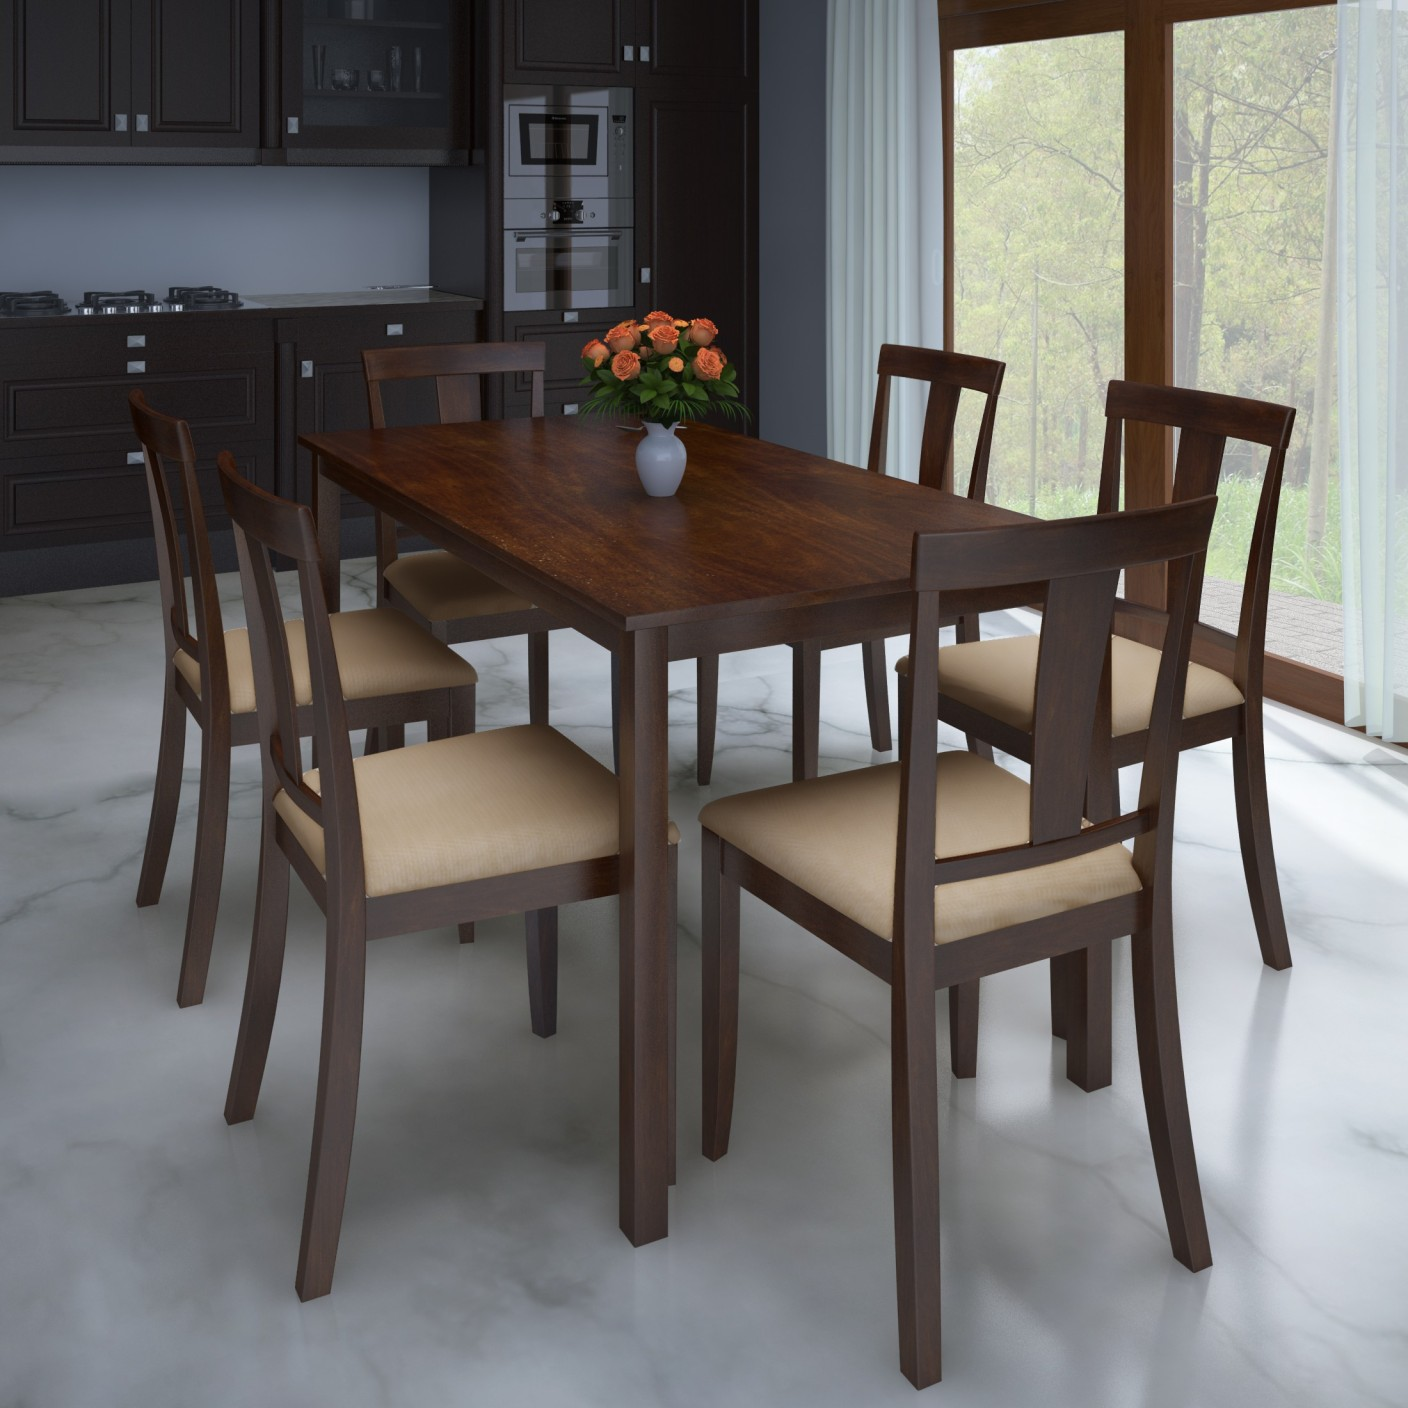 Wood Kitchen Tables And Chairs Sets Ideas With Enchanting: Perfect Homes By Flipkart Fraser Rubber Wood 6 Seater